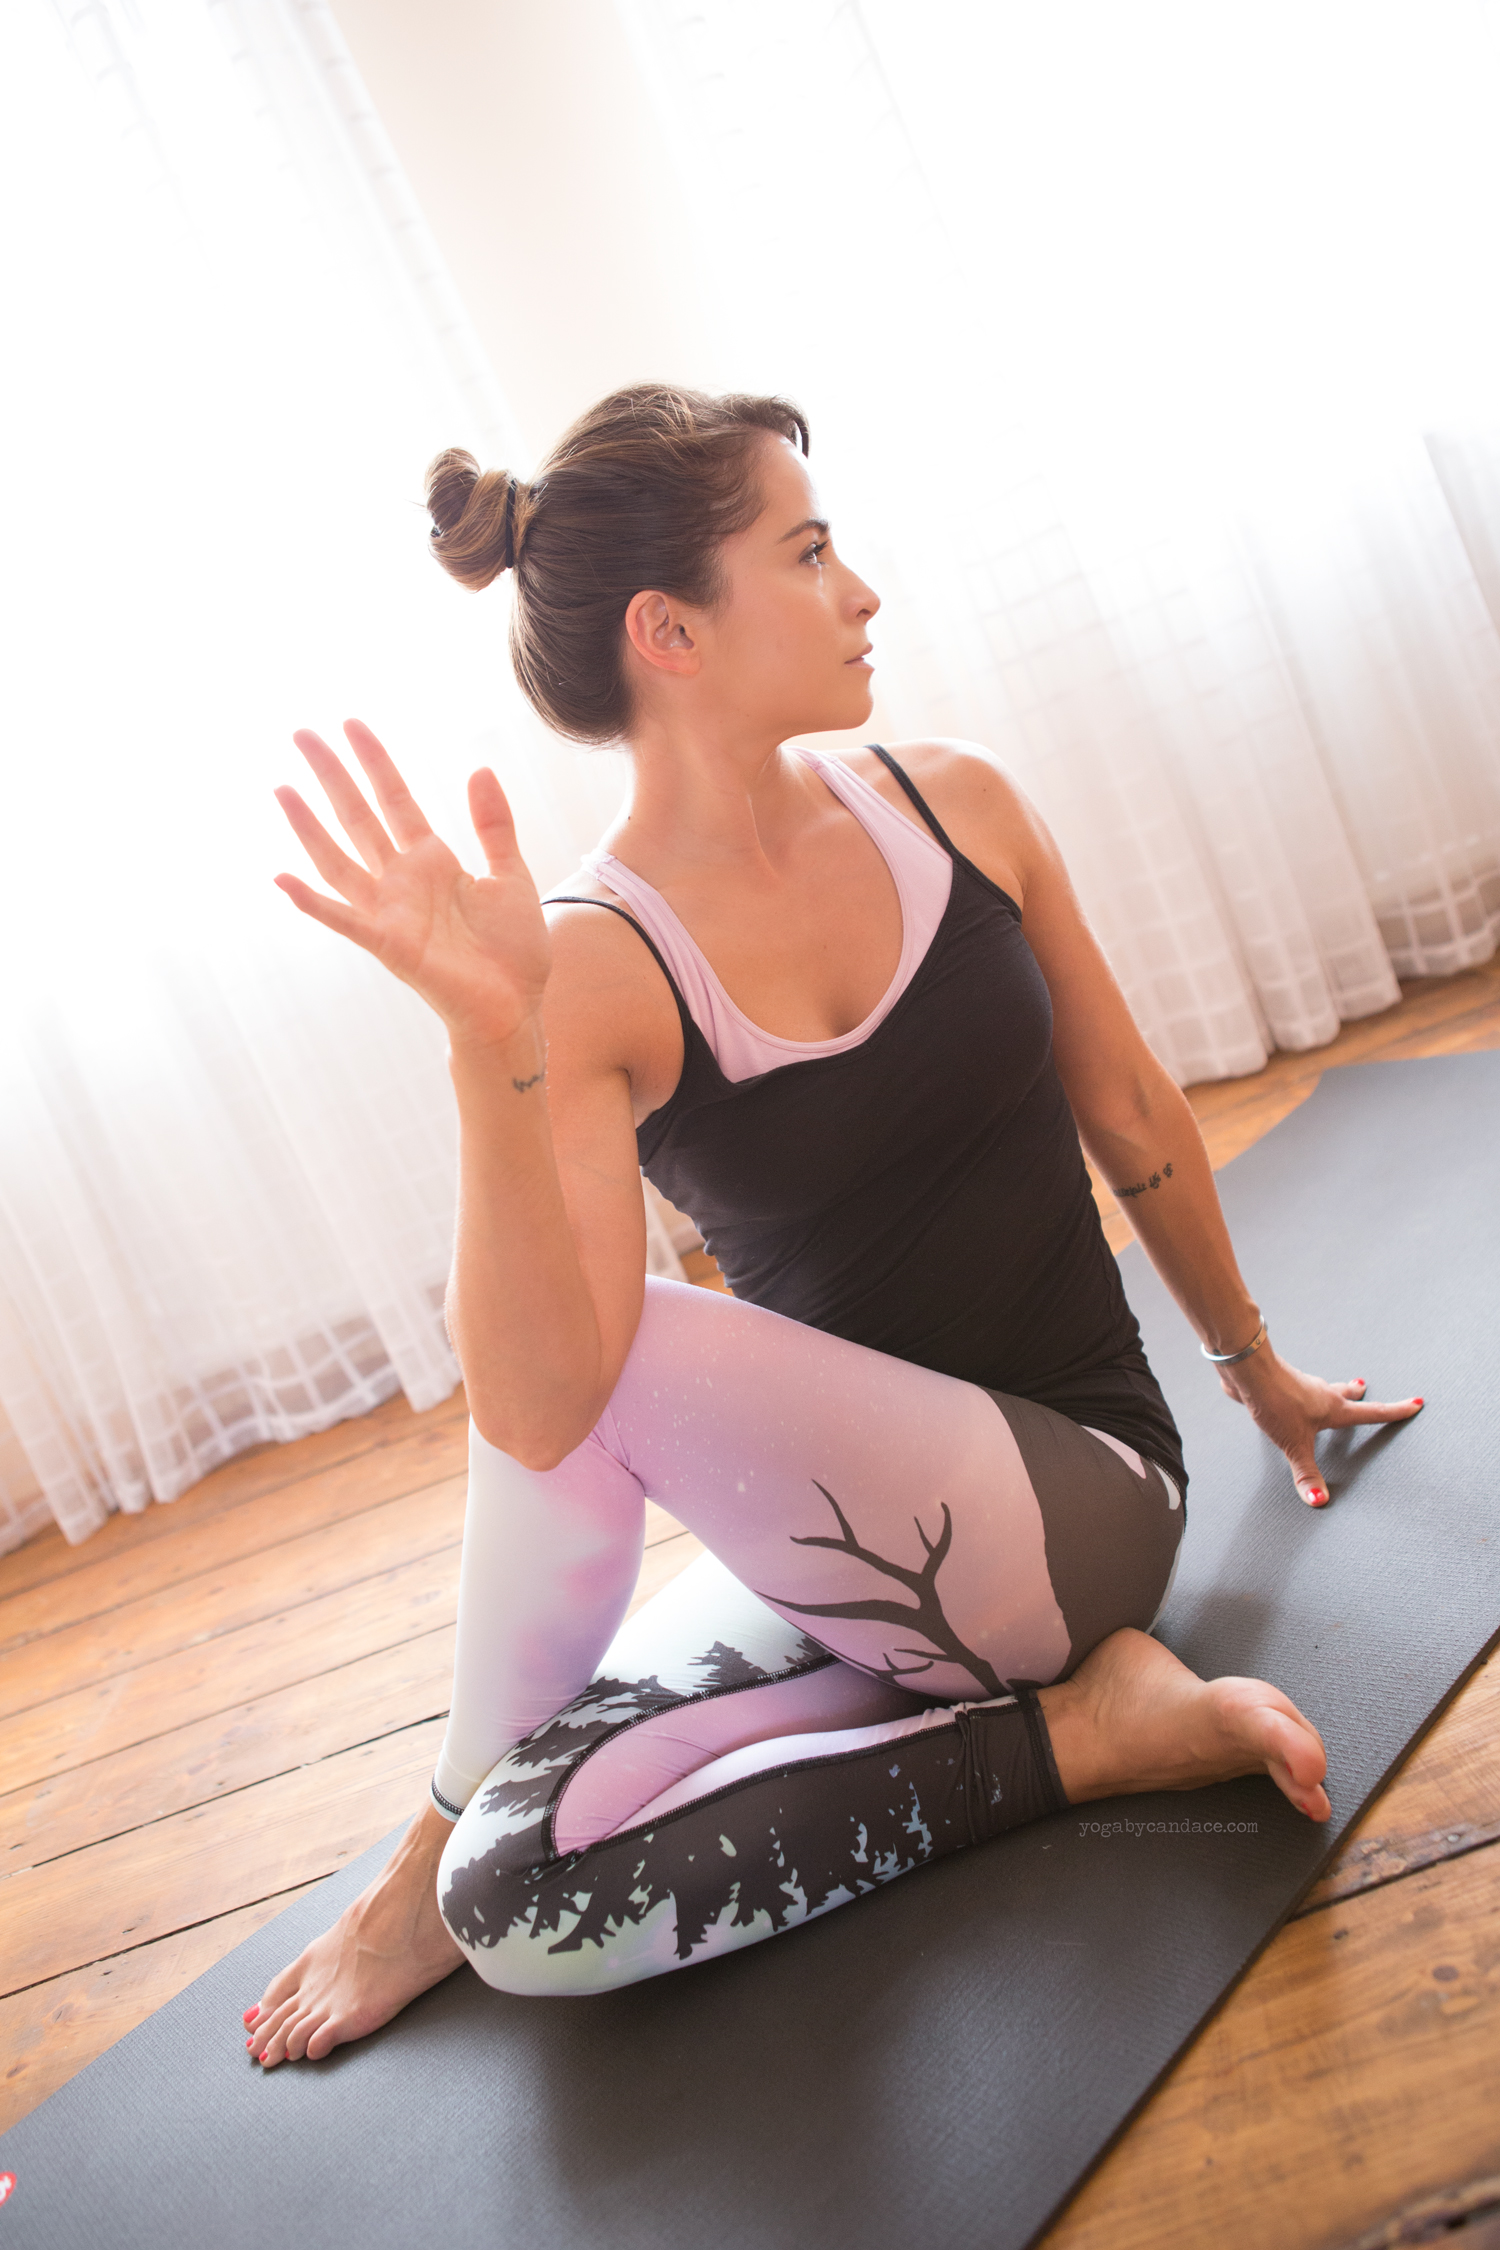 Seated twist - good stretch for the back of the hips and torso.   Wearing:  Teeki pants  . Using:  Black mat pro  .